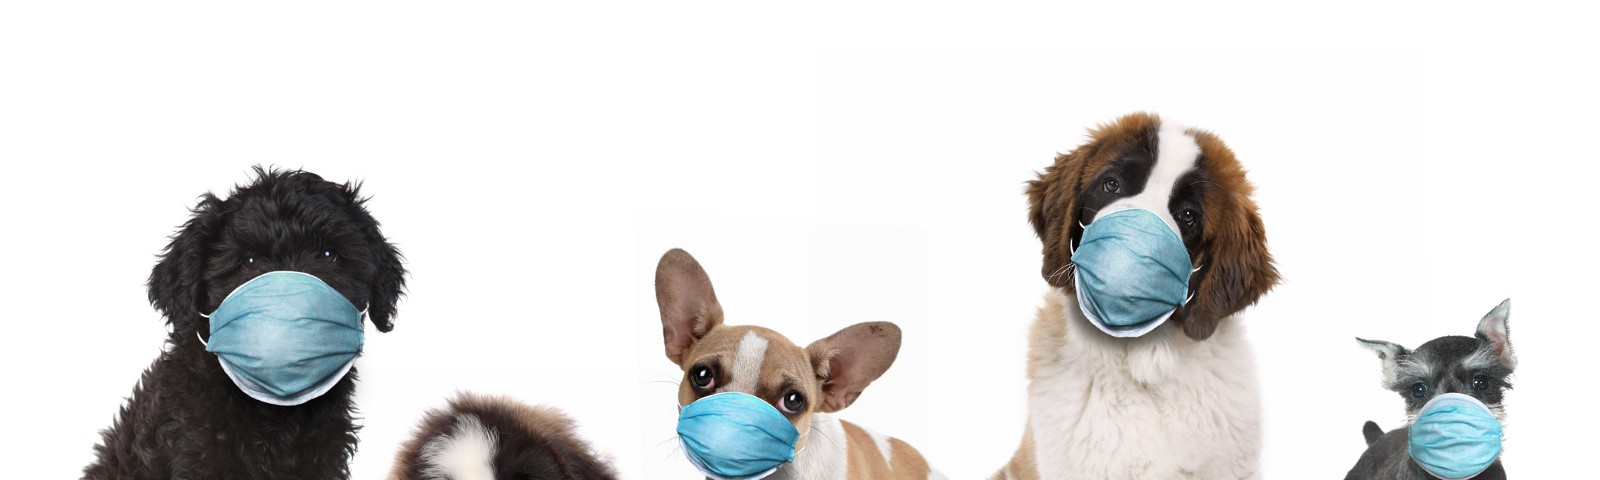 Five dogs wearing face masks